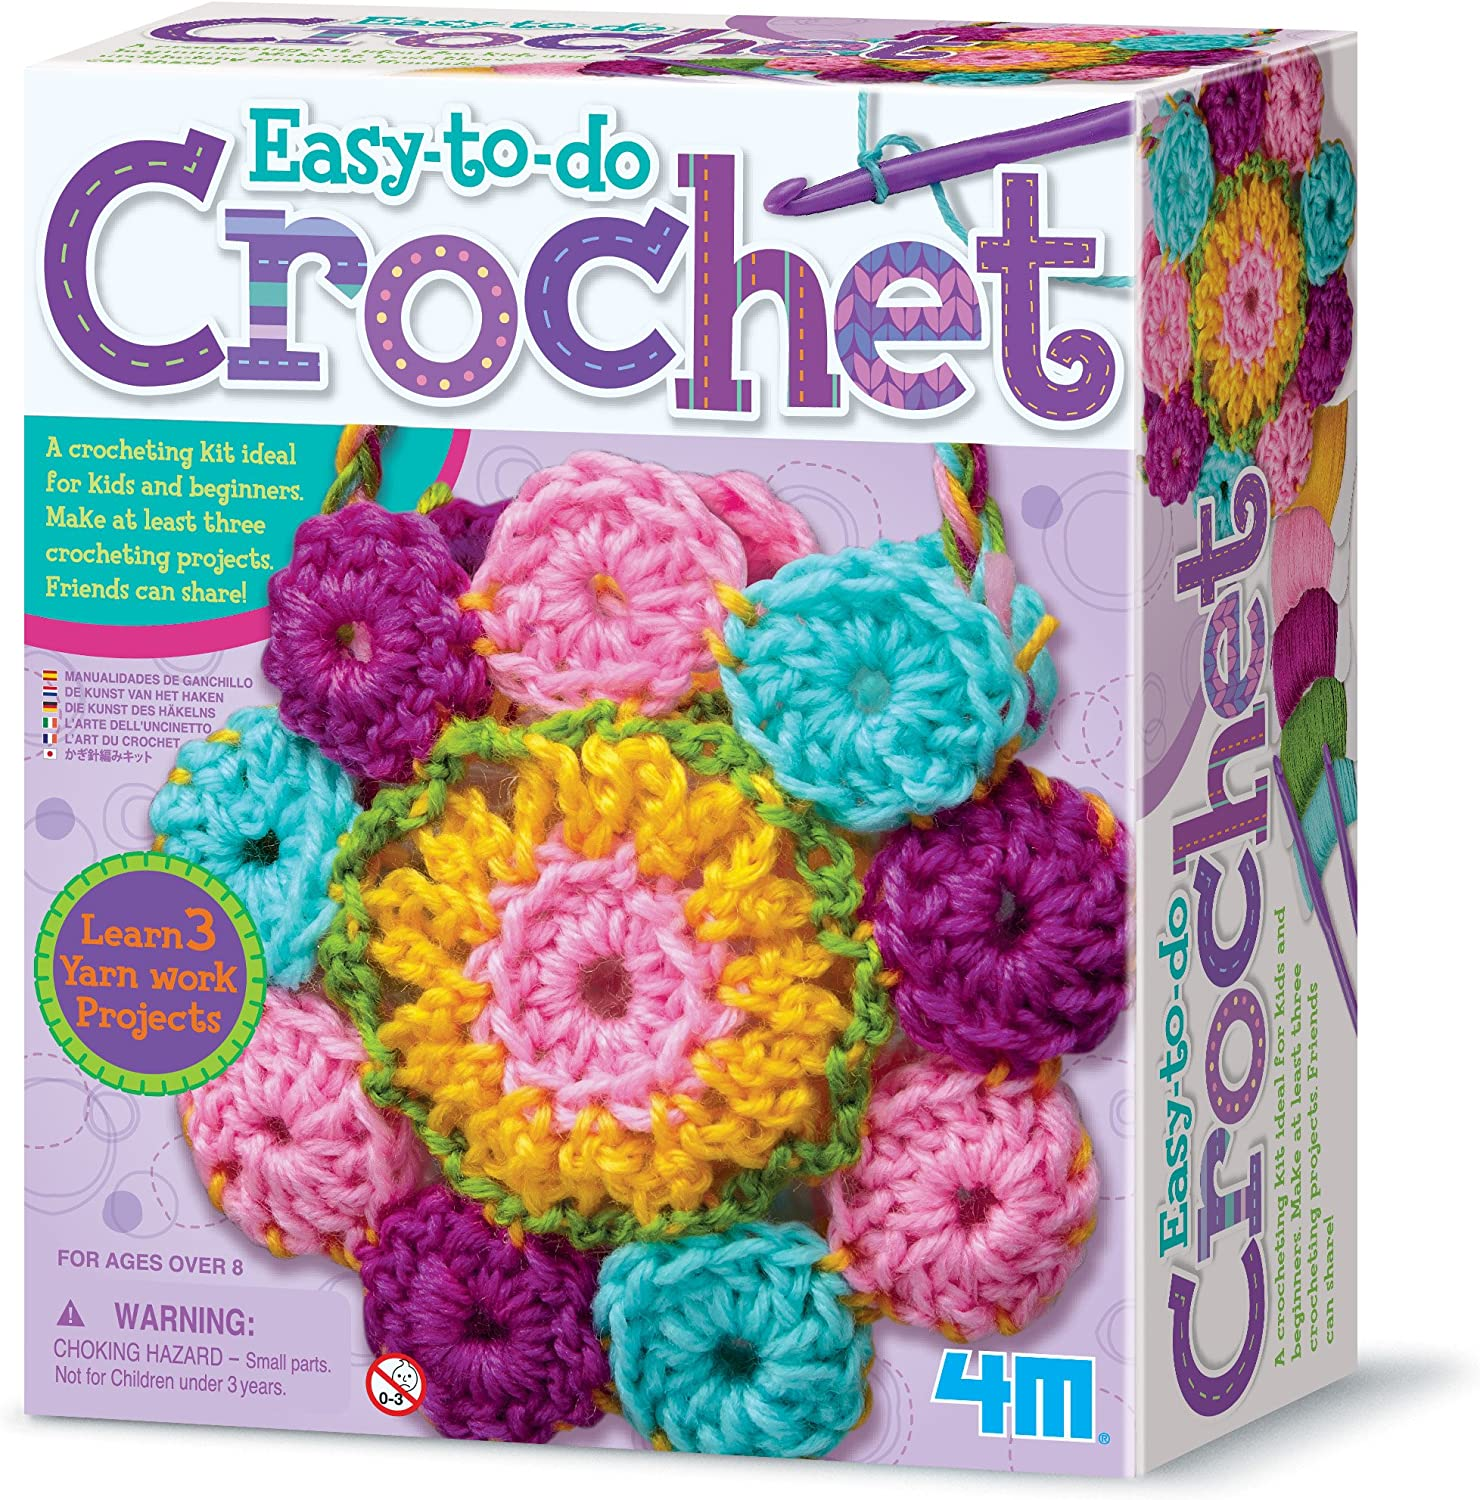 Crocheting For Beginners Kit